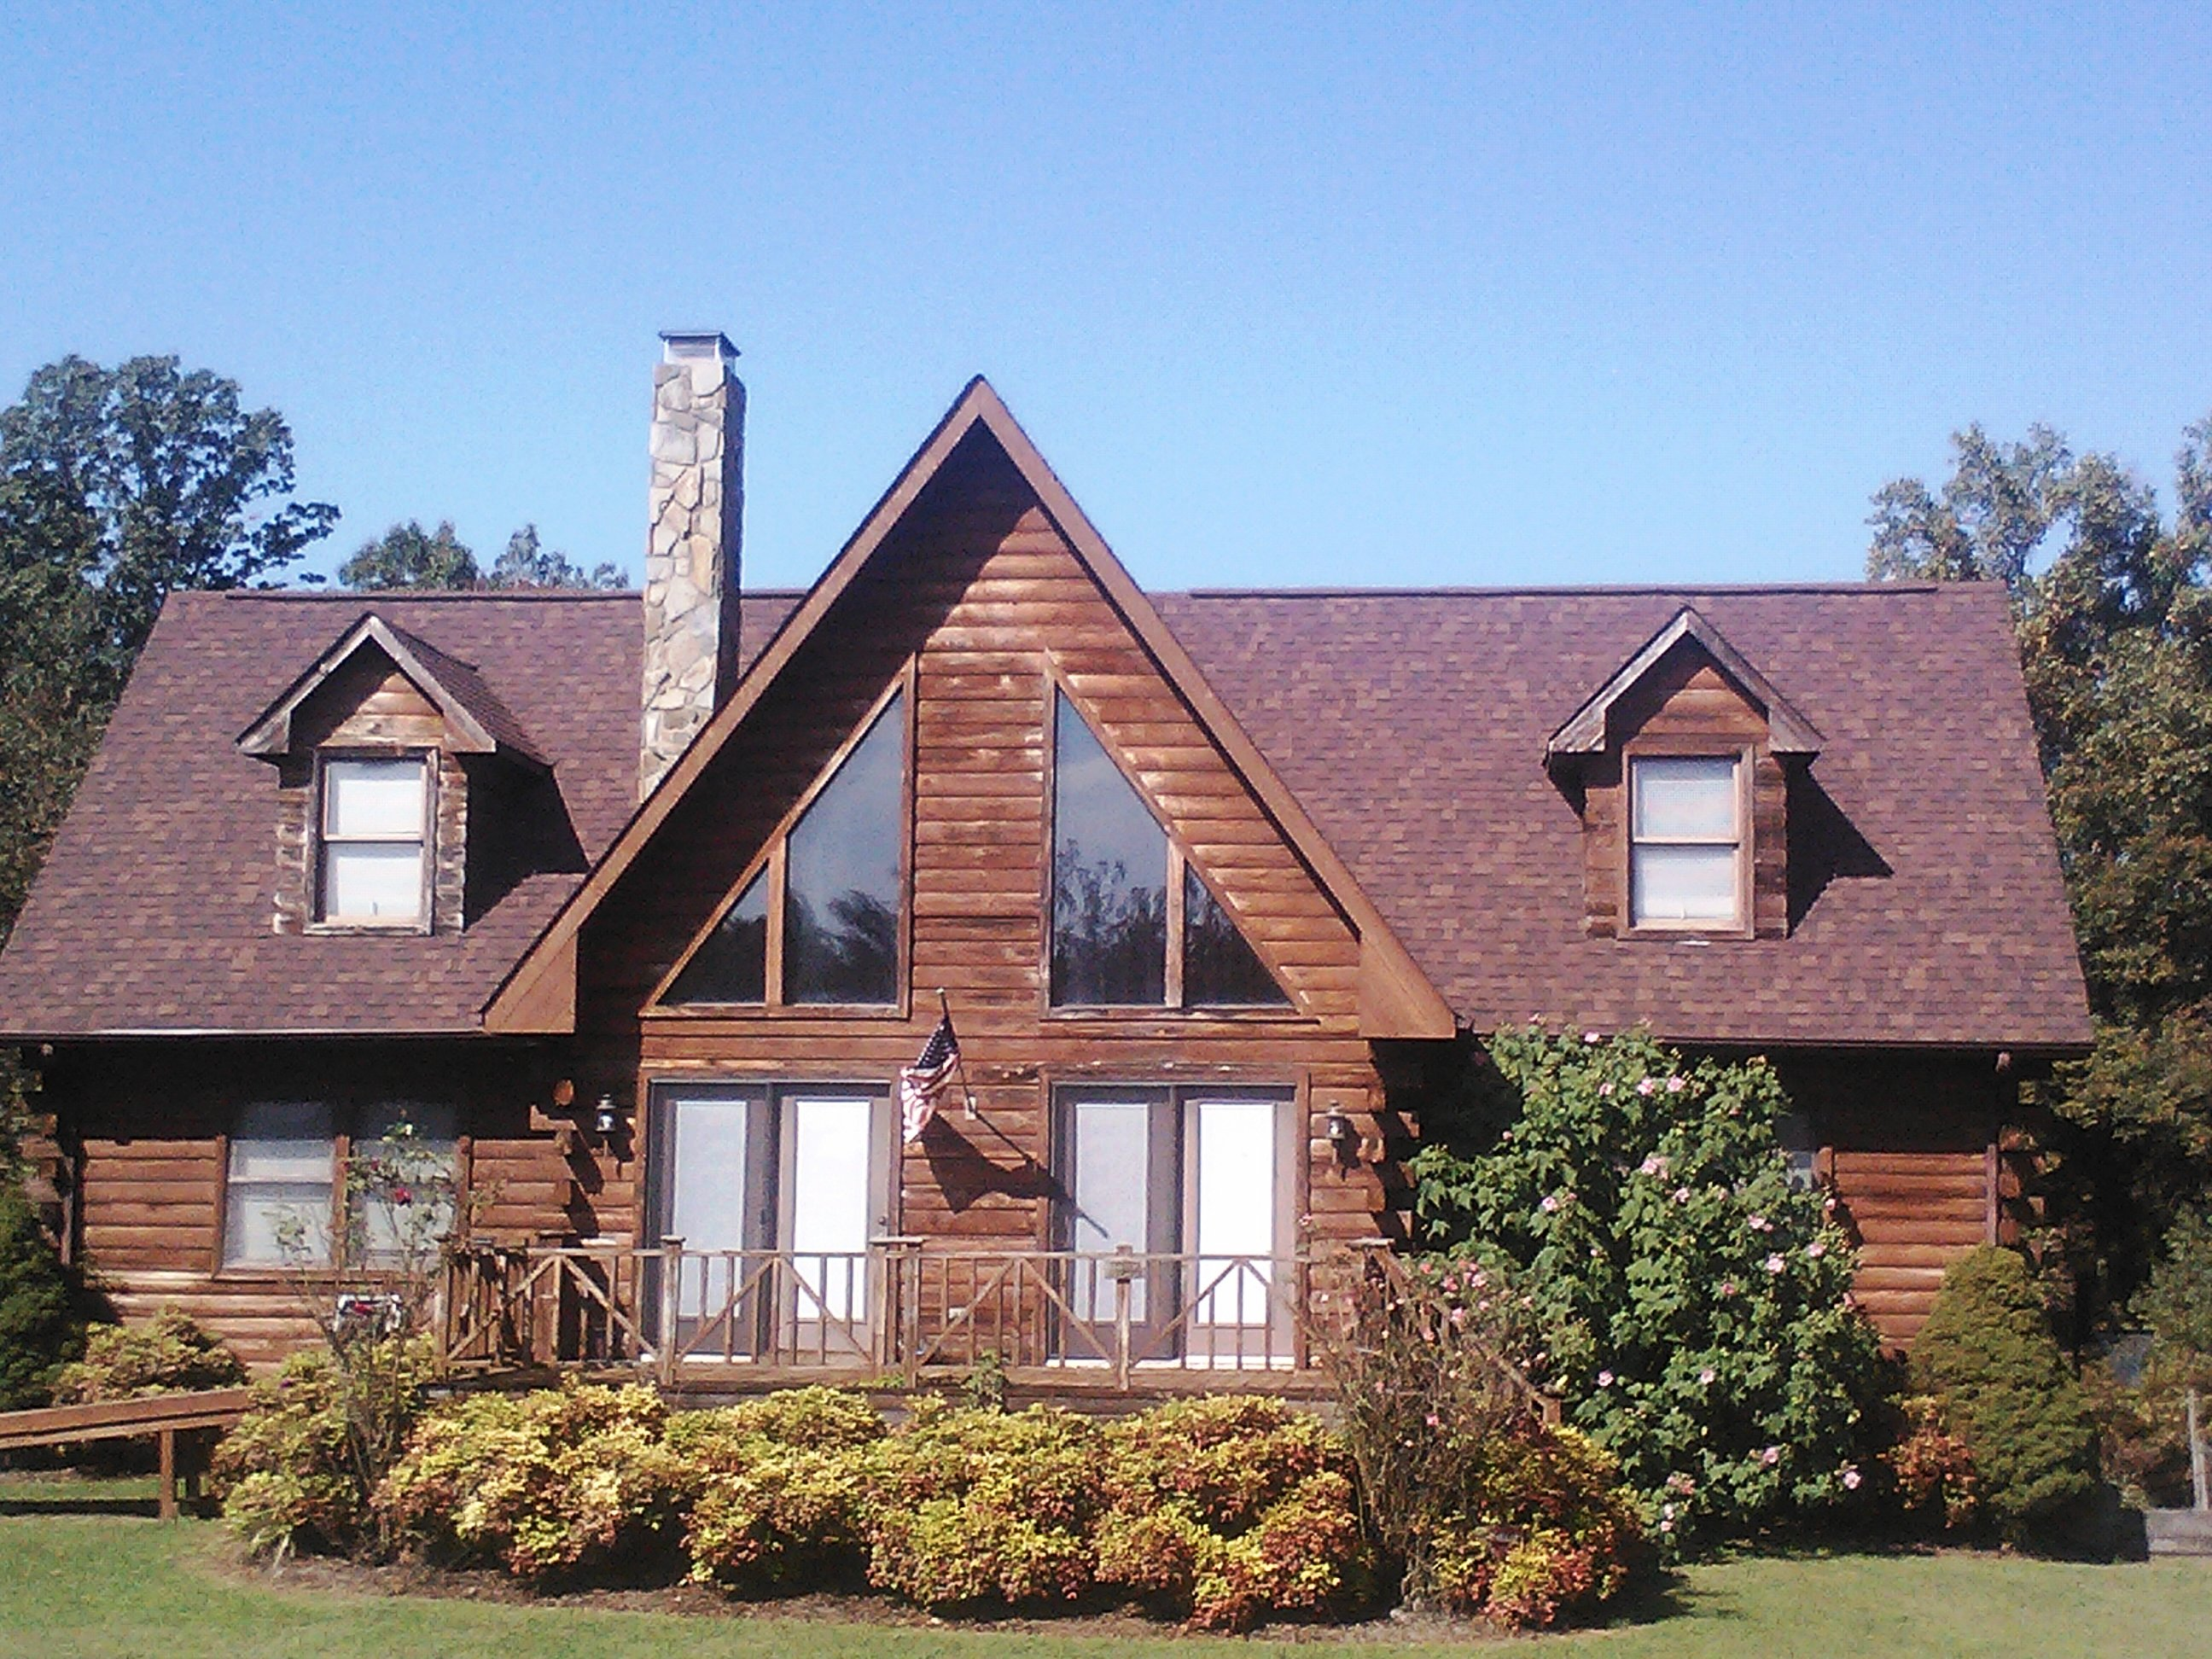 Roofing is a major part of the remodeling industry